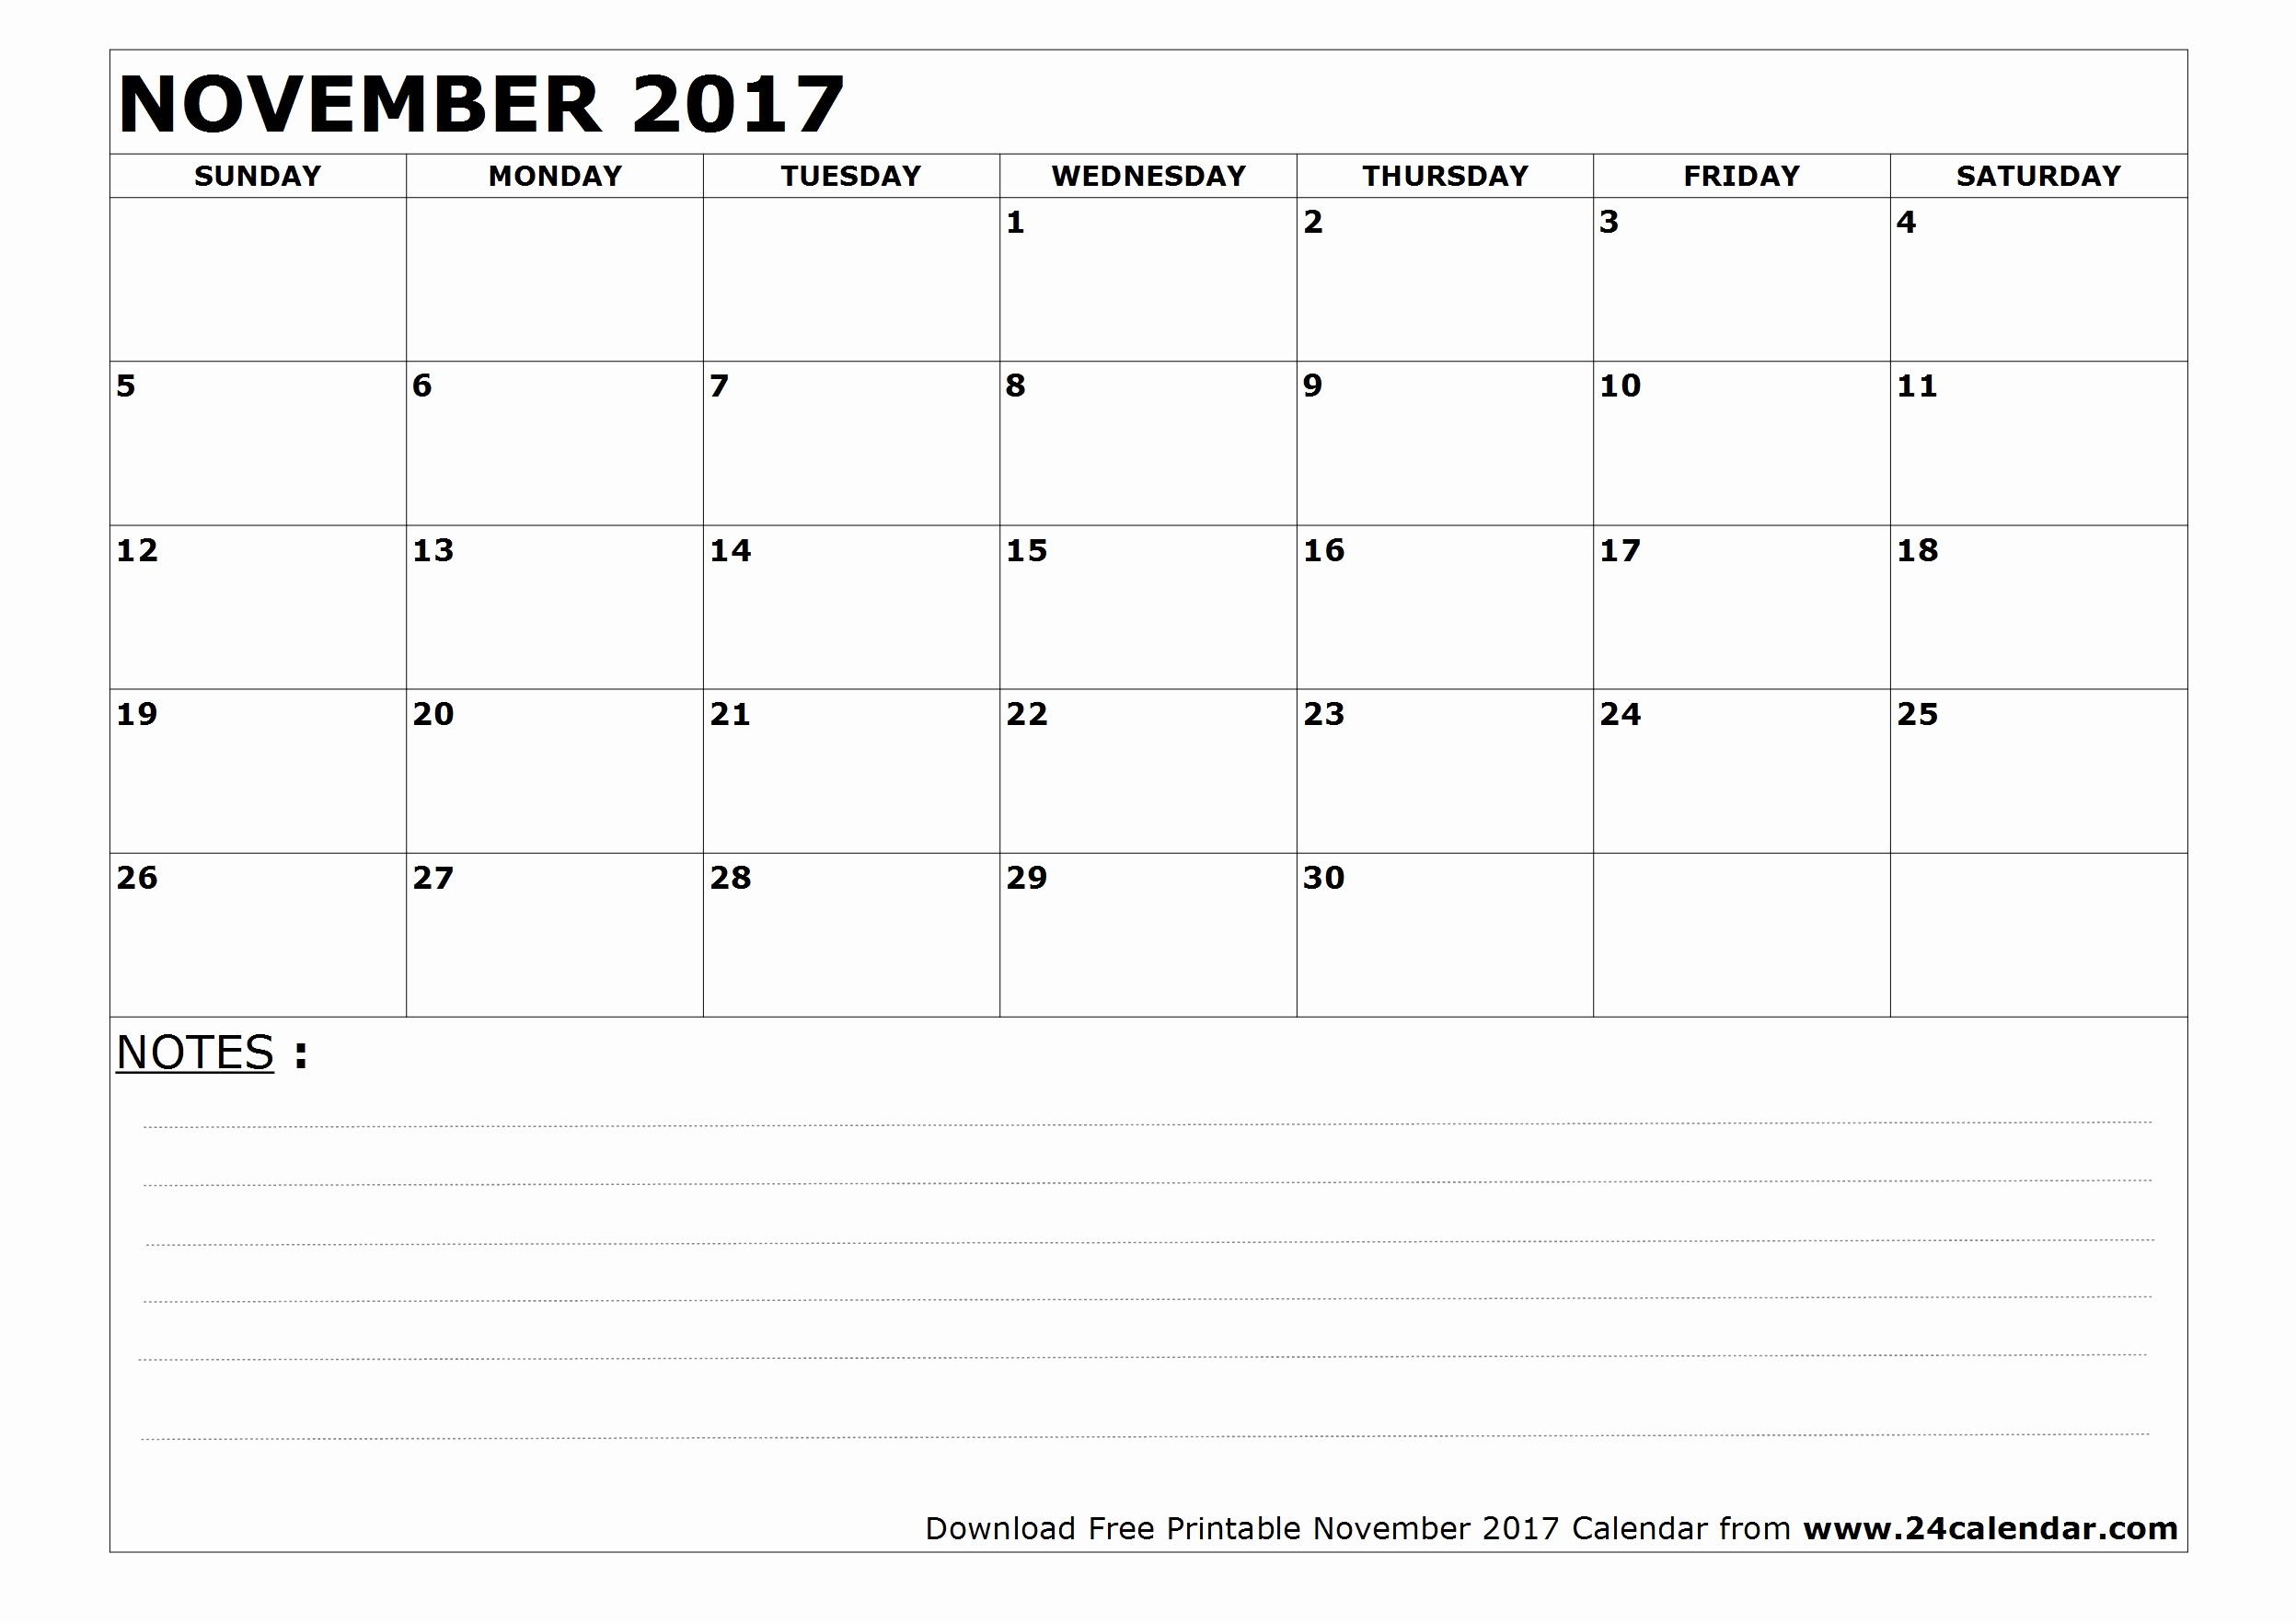 Blank November 2017 Calendar Template Best Of Blank November 2017 Calendar In Printable format